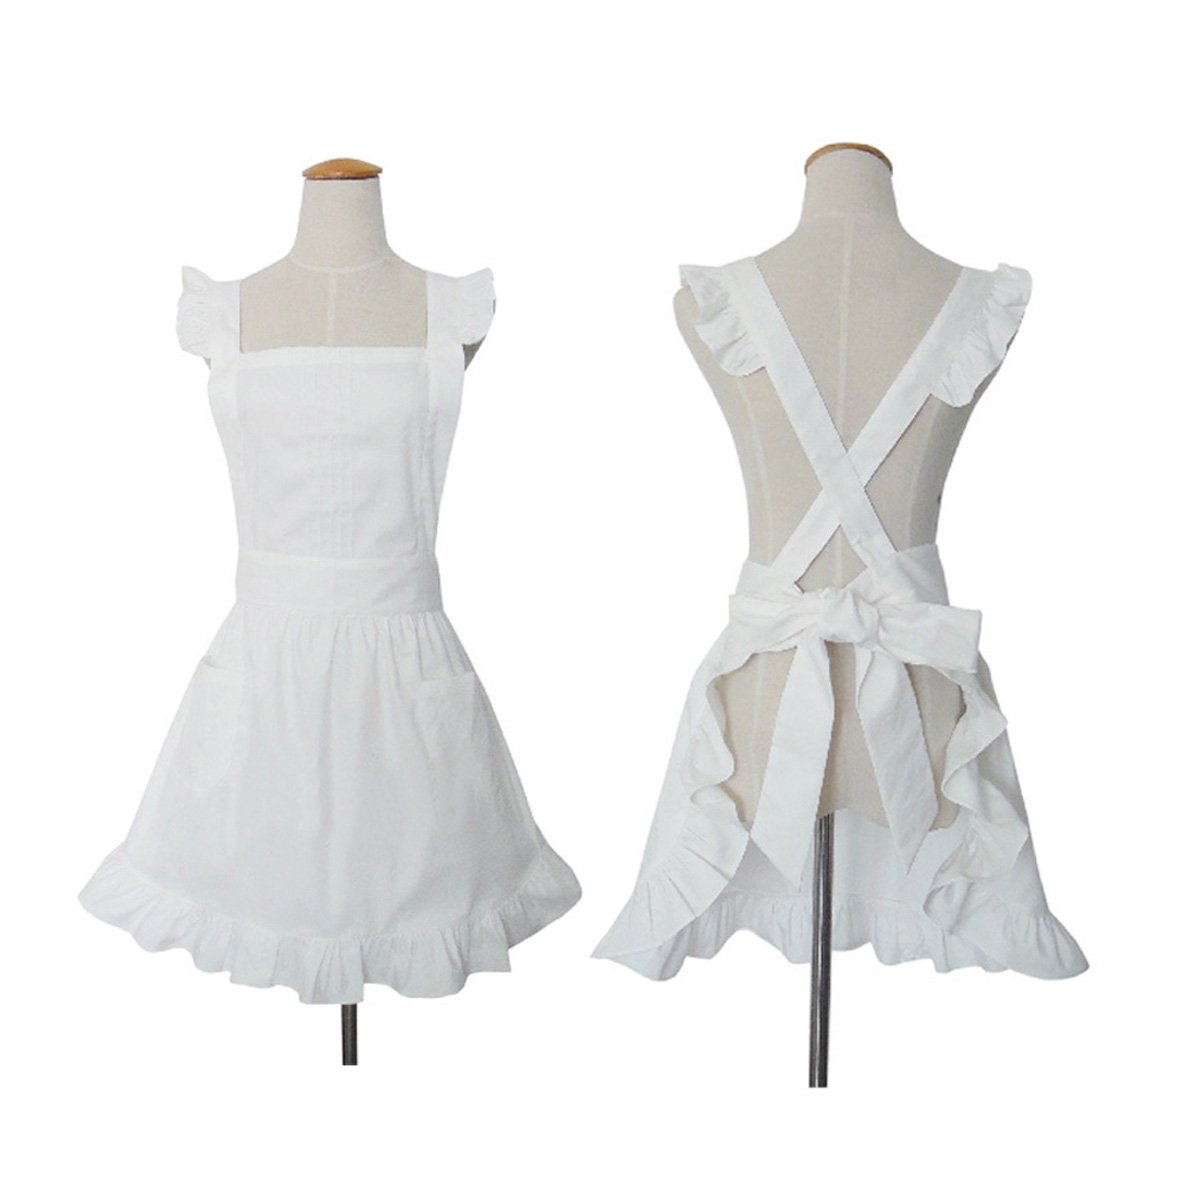 Cute White Retro Lady's Aprons for Women's Kitchen Cooking Cleaning Maid Costume with Pockets